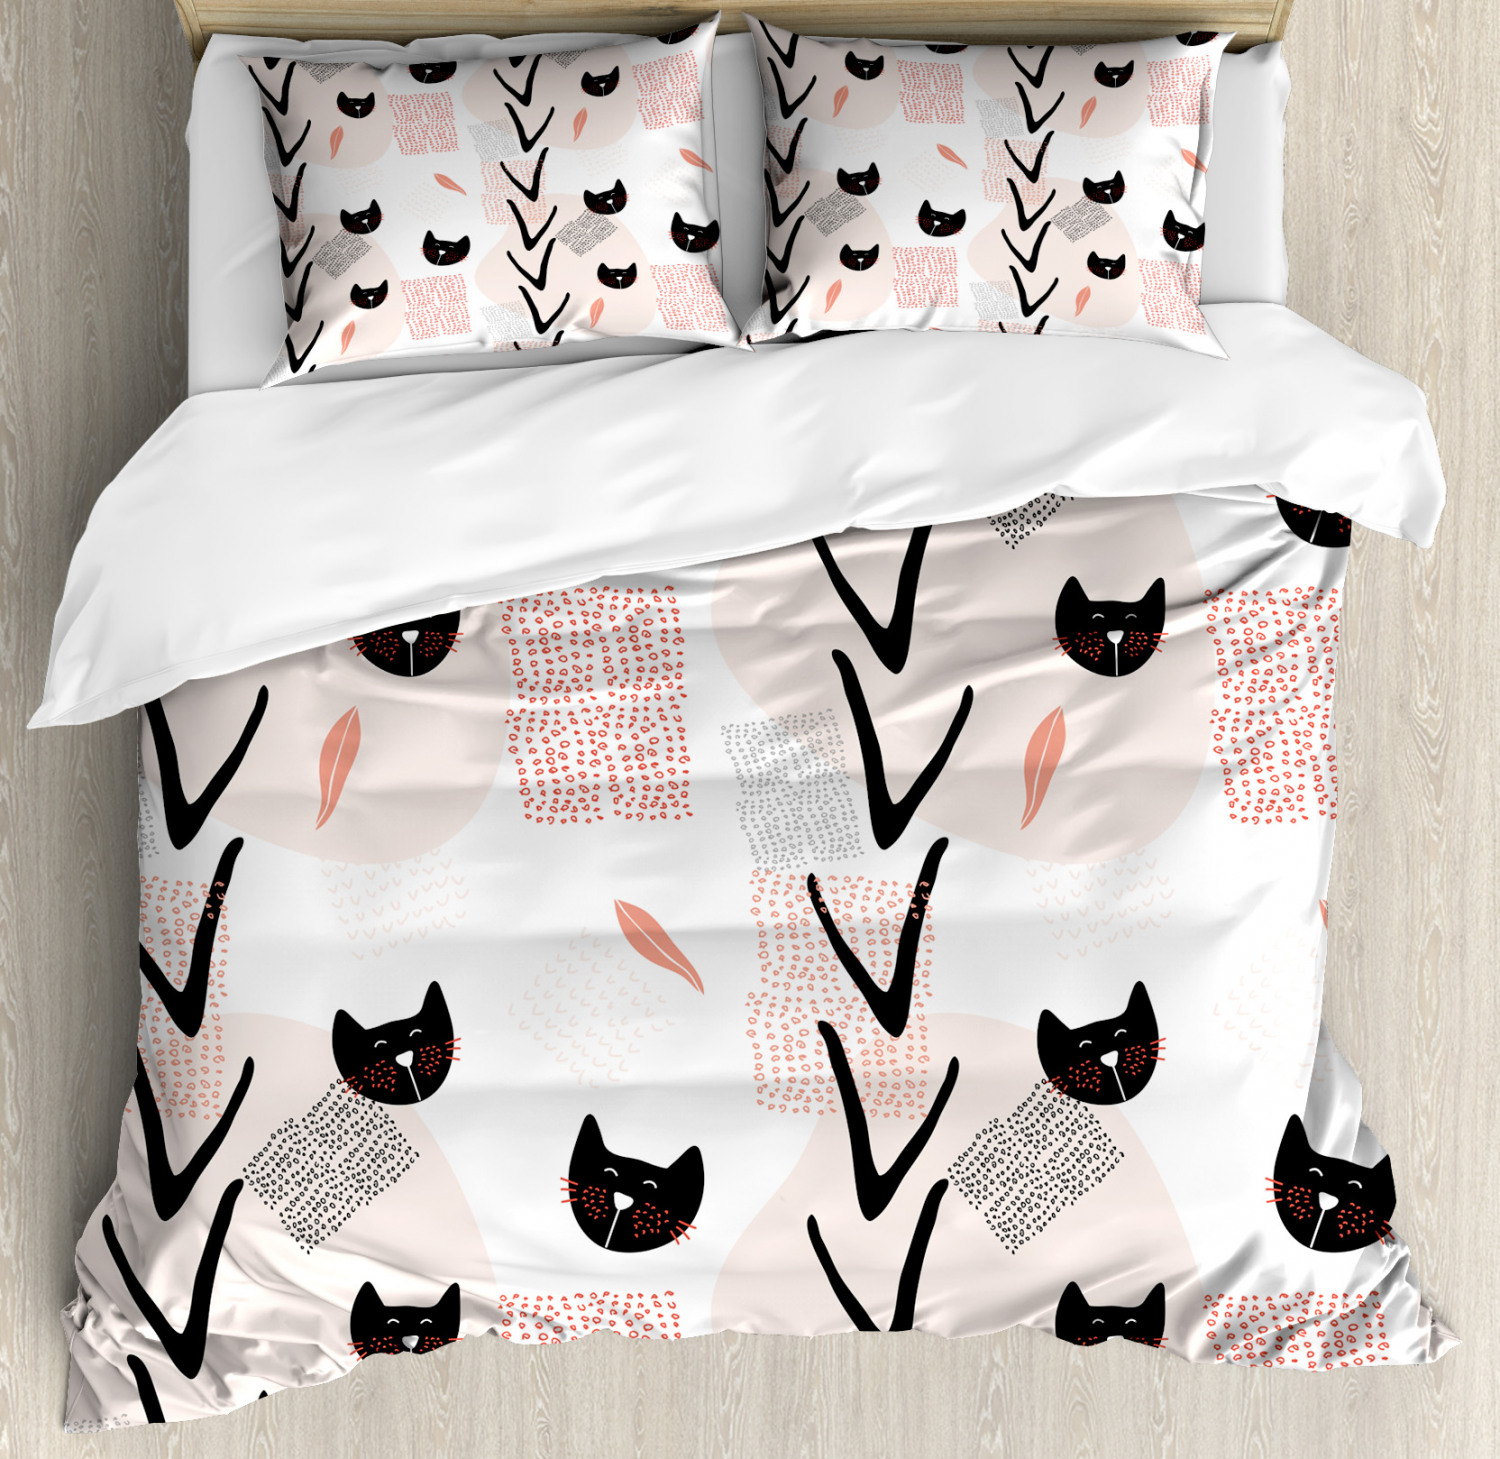 Kitten Duvet Cover Set with Pillow Shams Cute Cat Faces Dotted Print